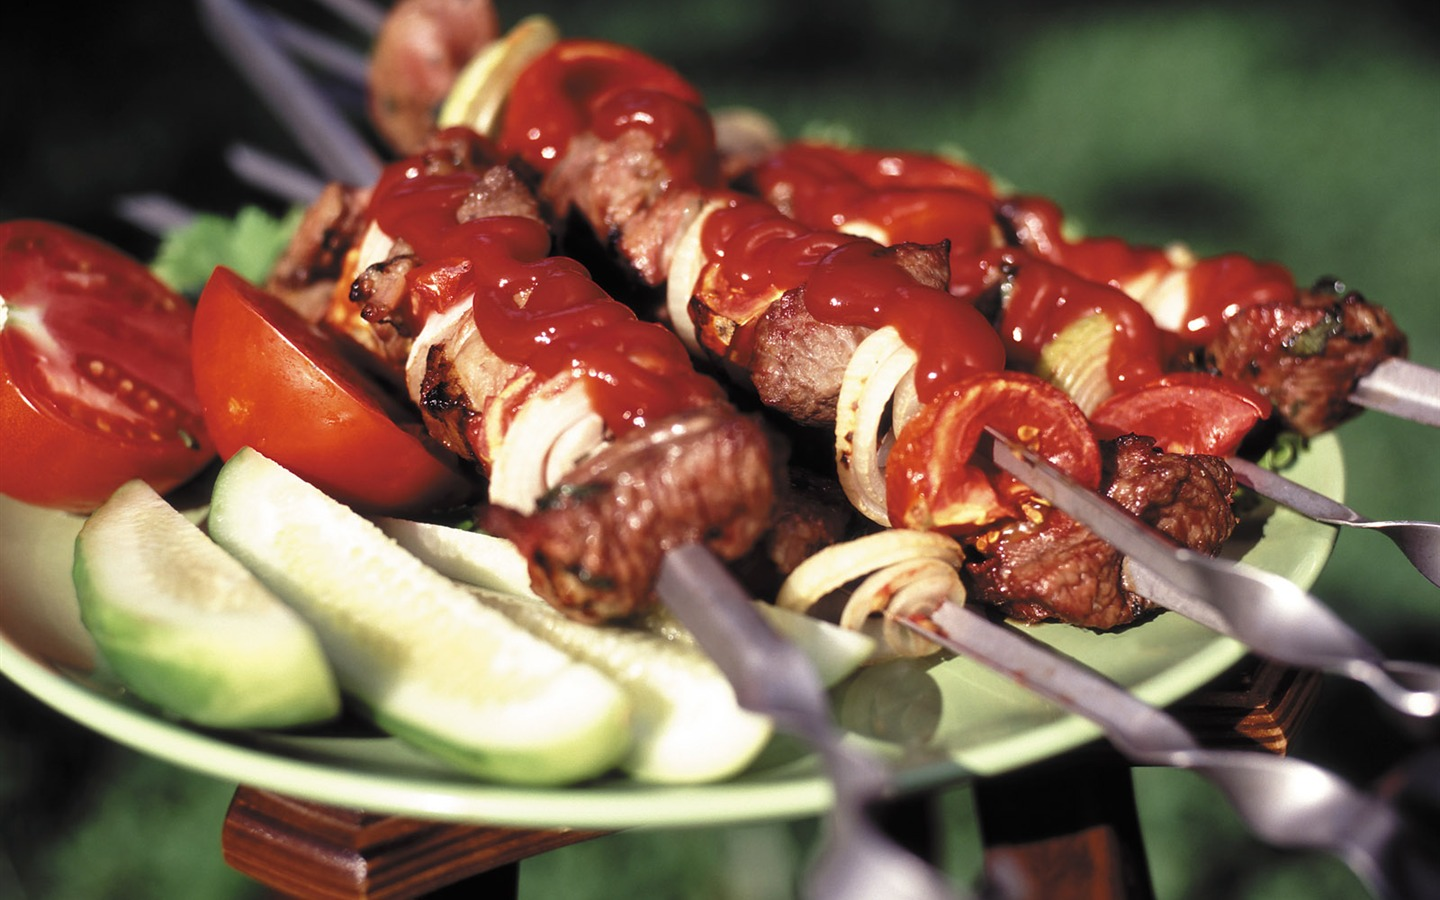 Delicious barbecue wallpaper (4) #14 - 1440x900